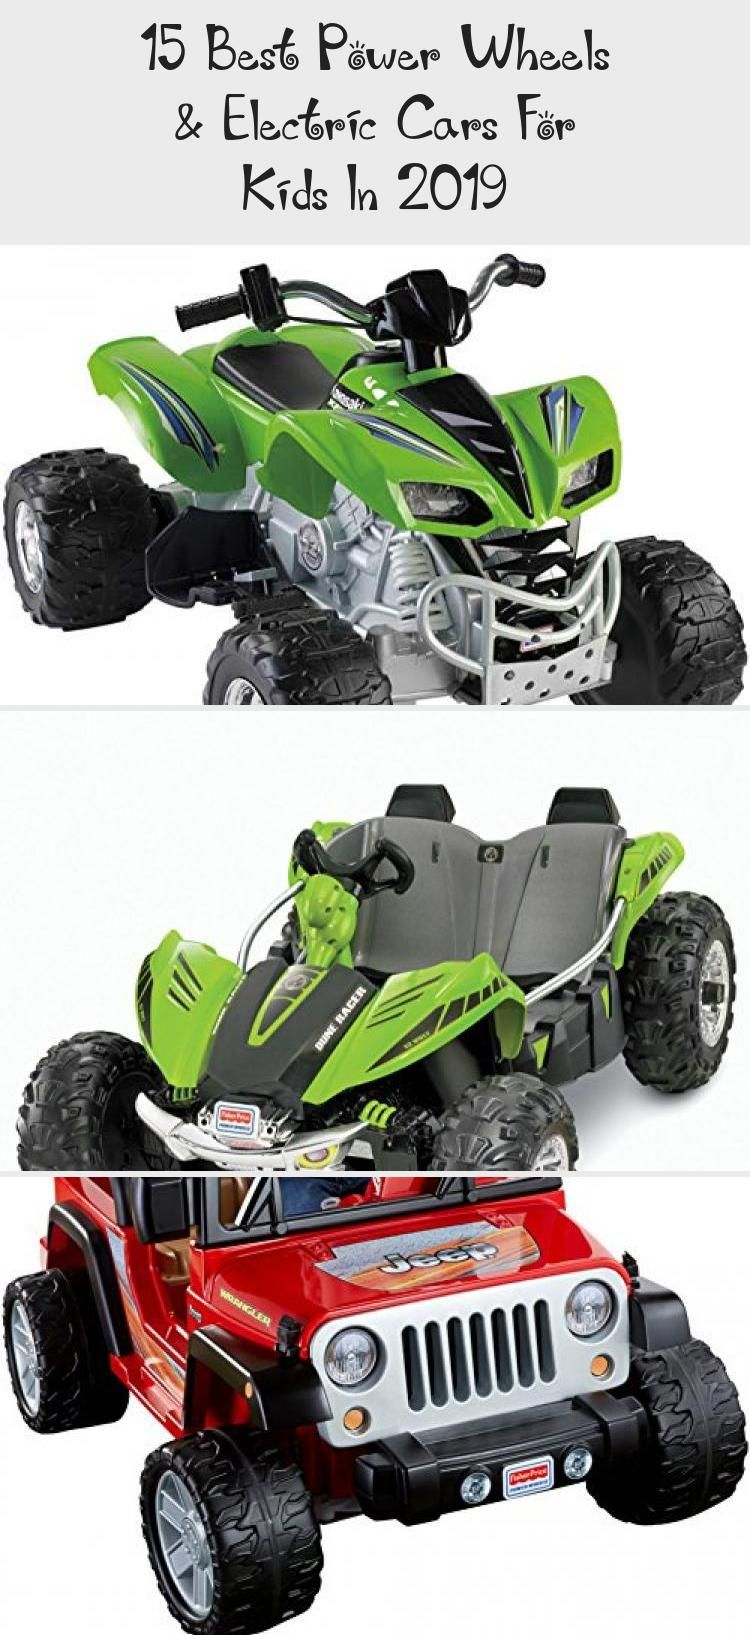 15 Best Power Wheels & Electric Cars For Kids In 2019 in